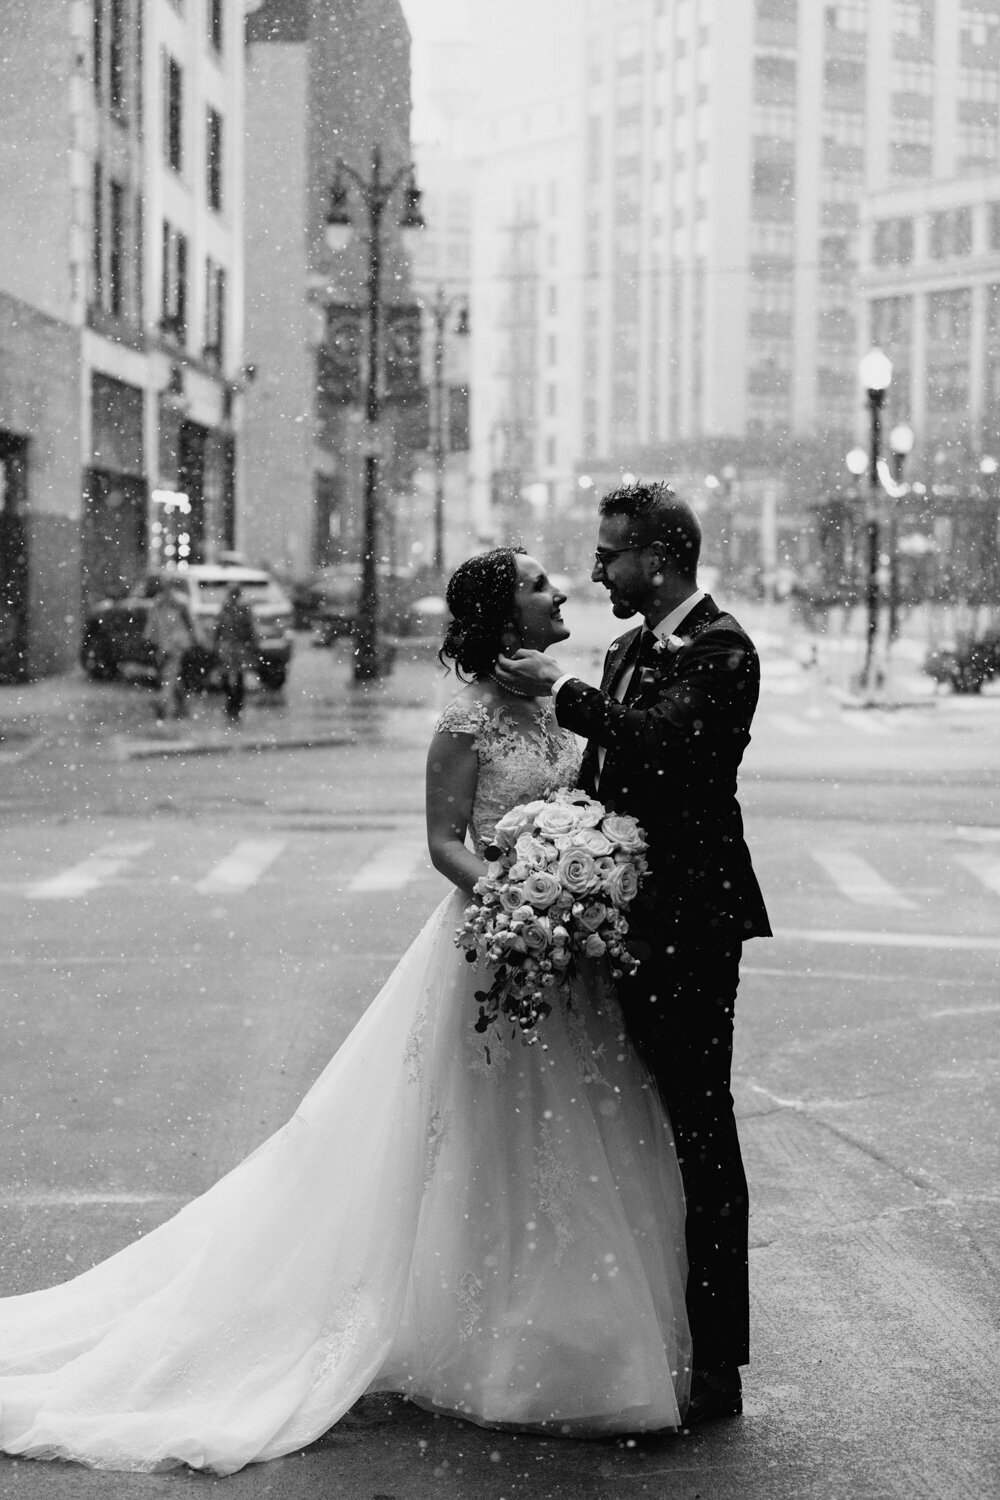 WinterWeddingDetroit_026